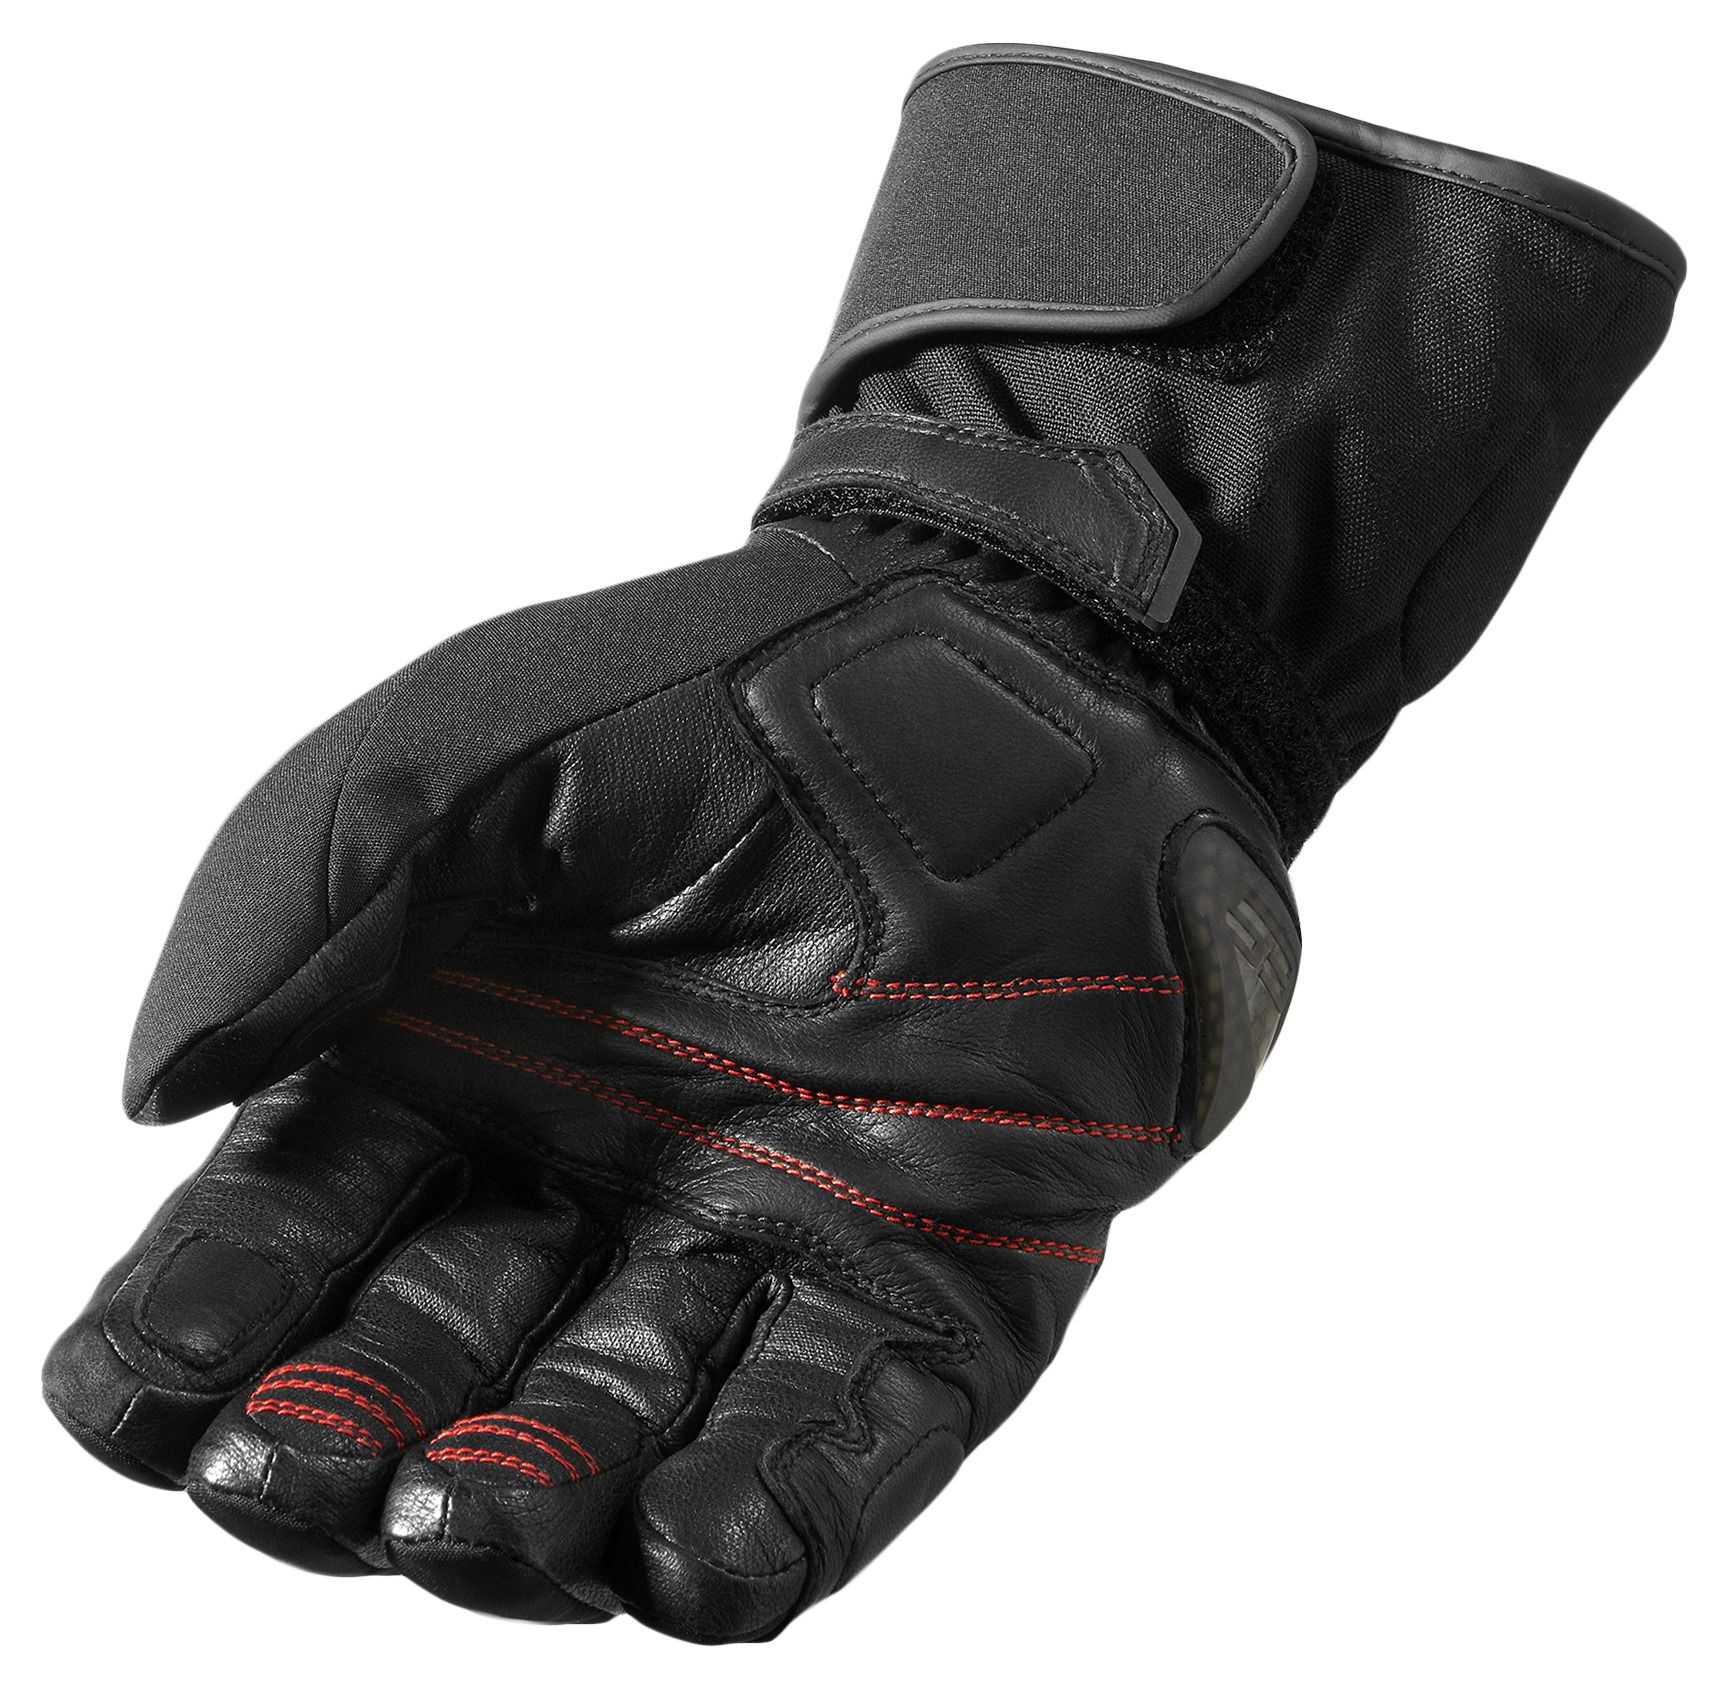 Revit Fusion Gtx Gloves Revzilla Gerbing Heated Clothing Wiring Diagram